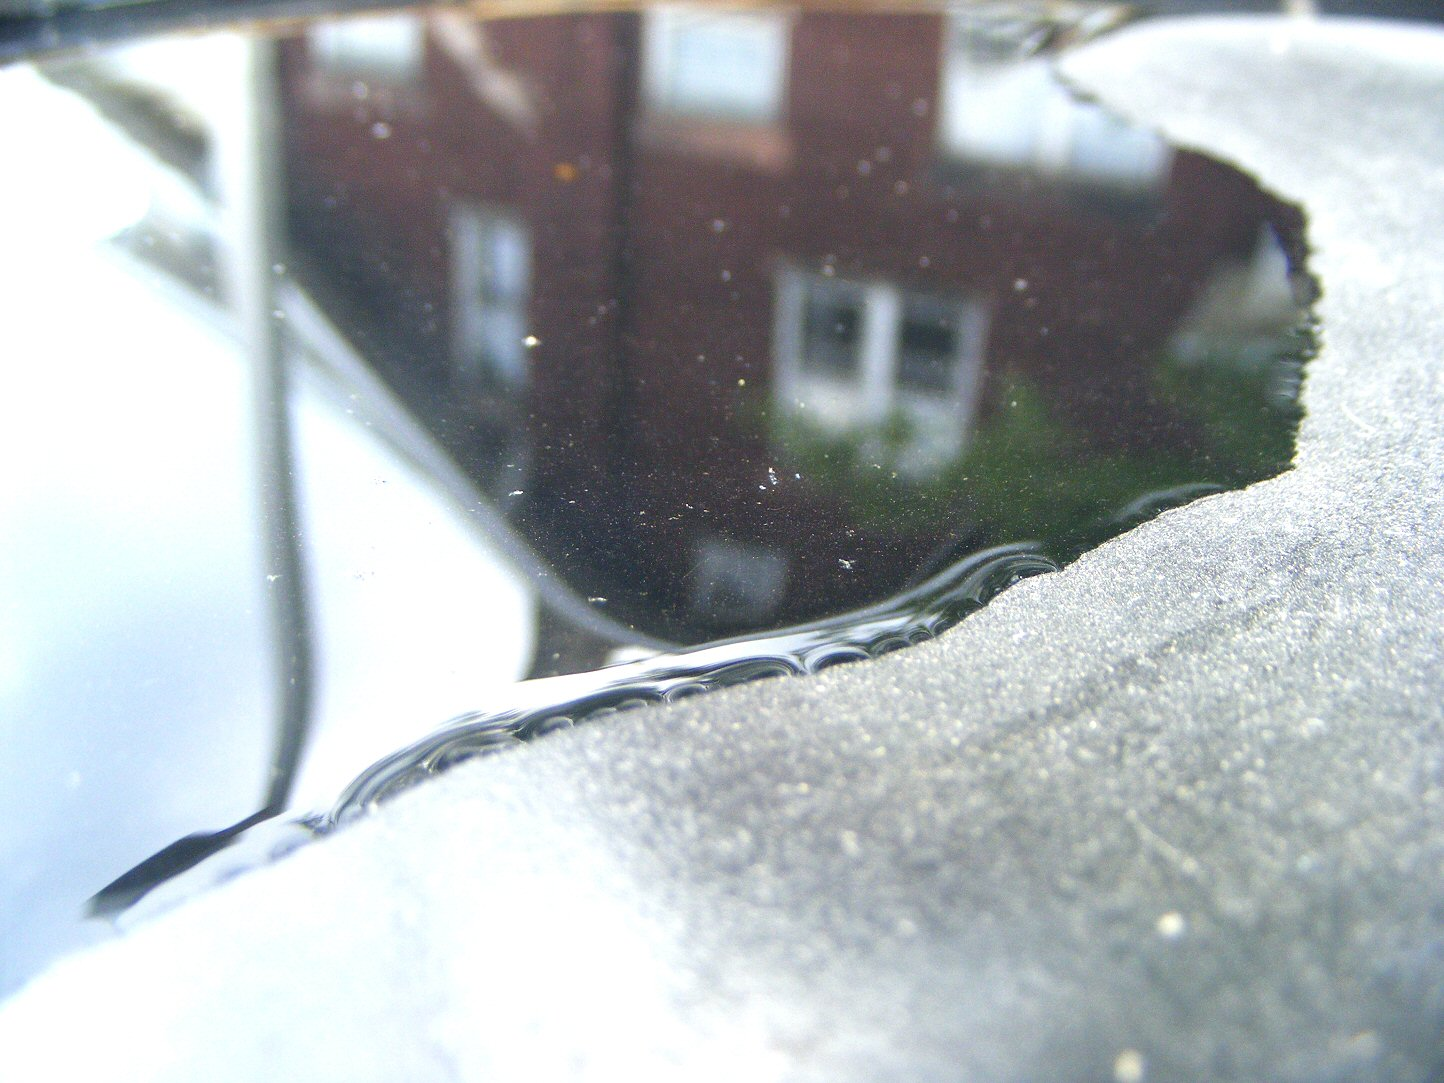 Puddle with a Blurry House in the Background